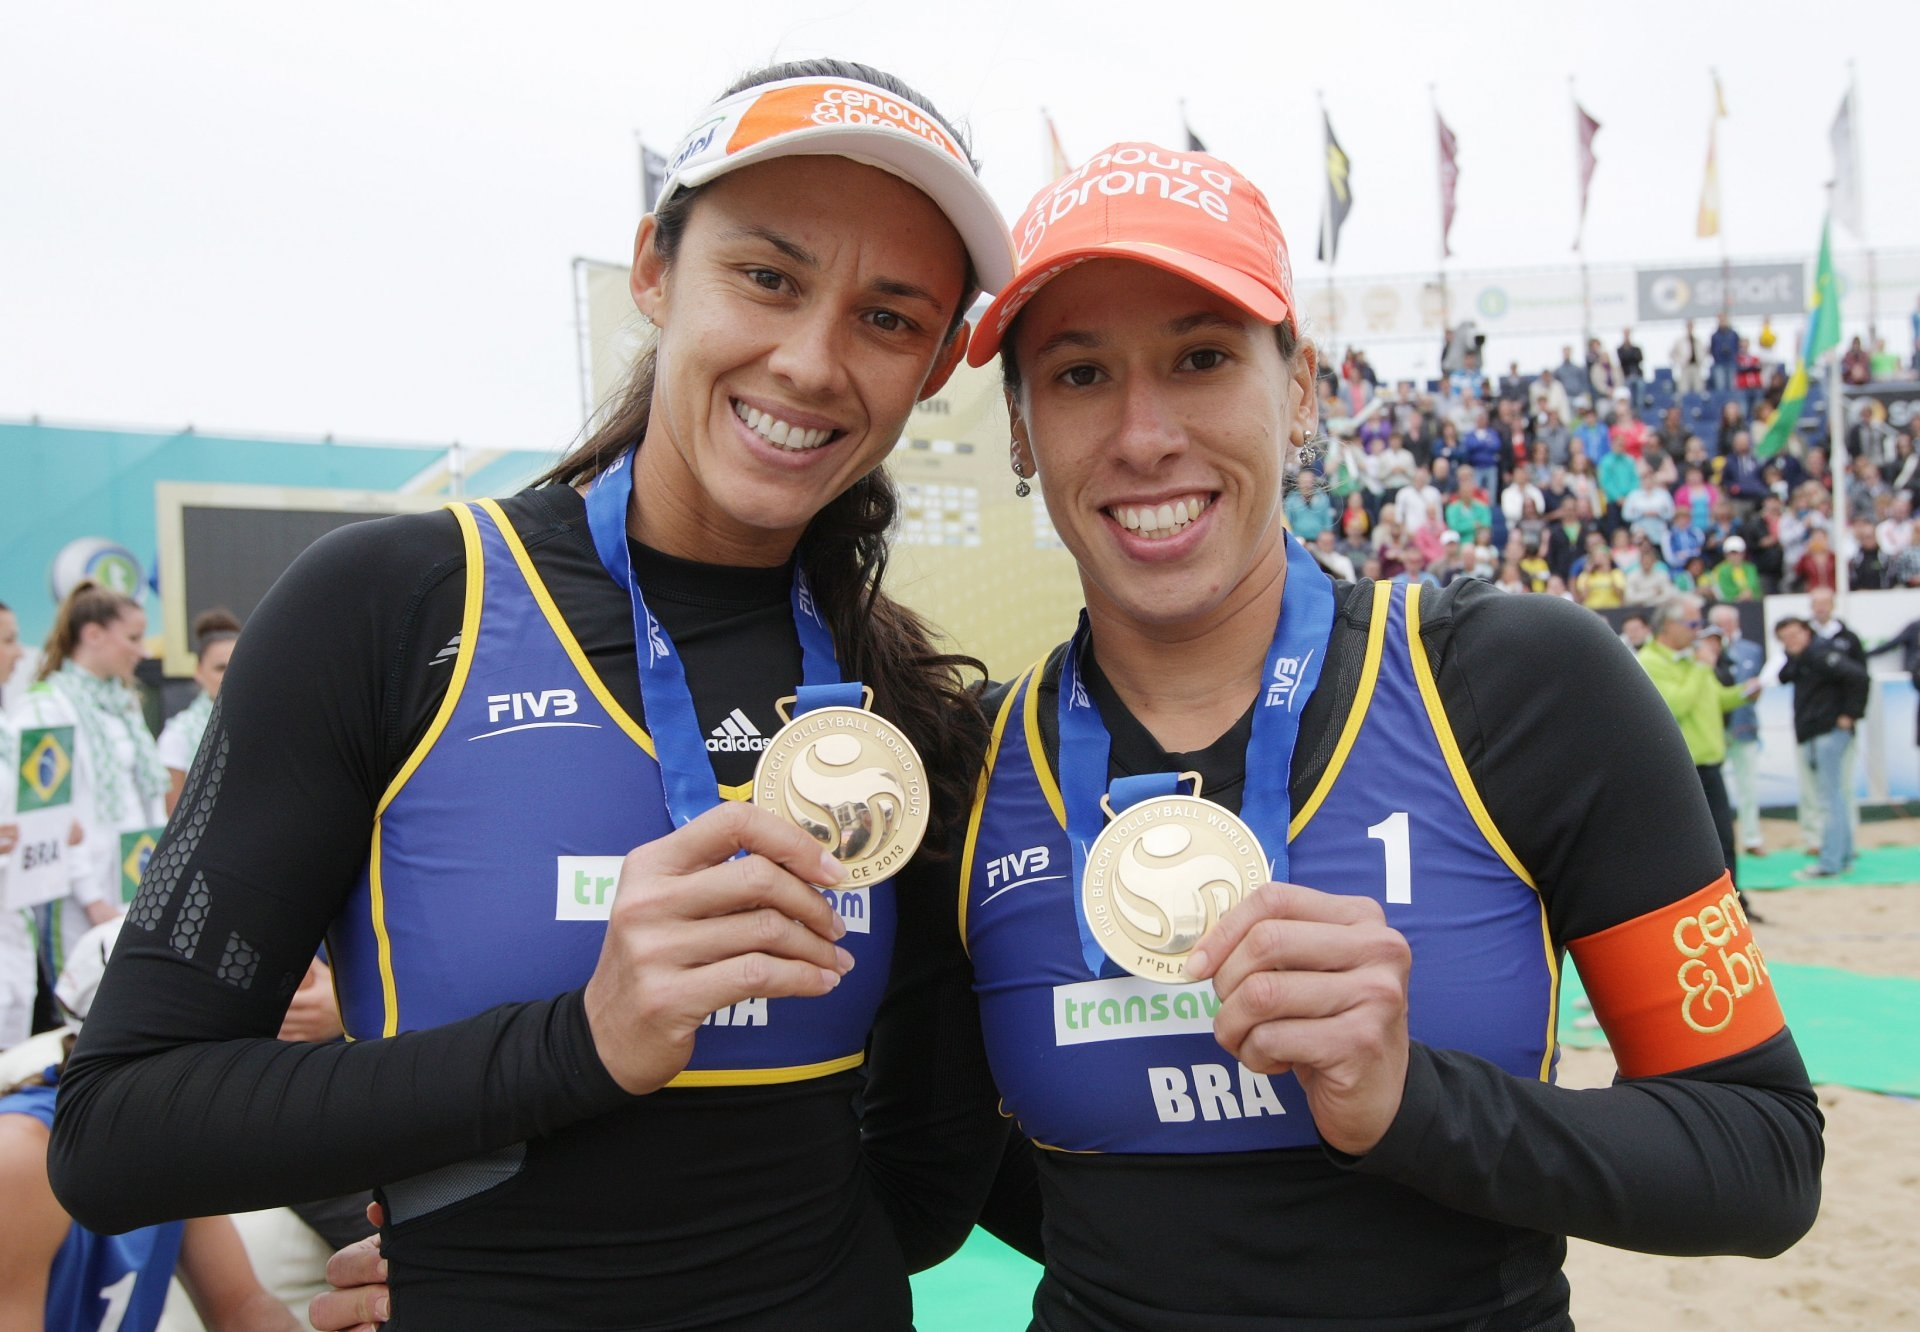 Talita and Taiana pose with one of the five gold medals the won together between 2013 and 2014 (Photocredit: FIVB)